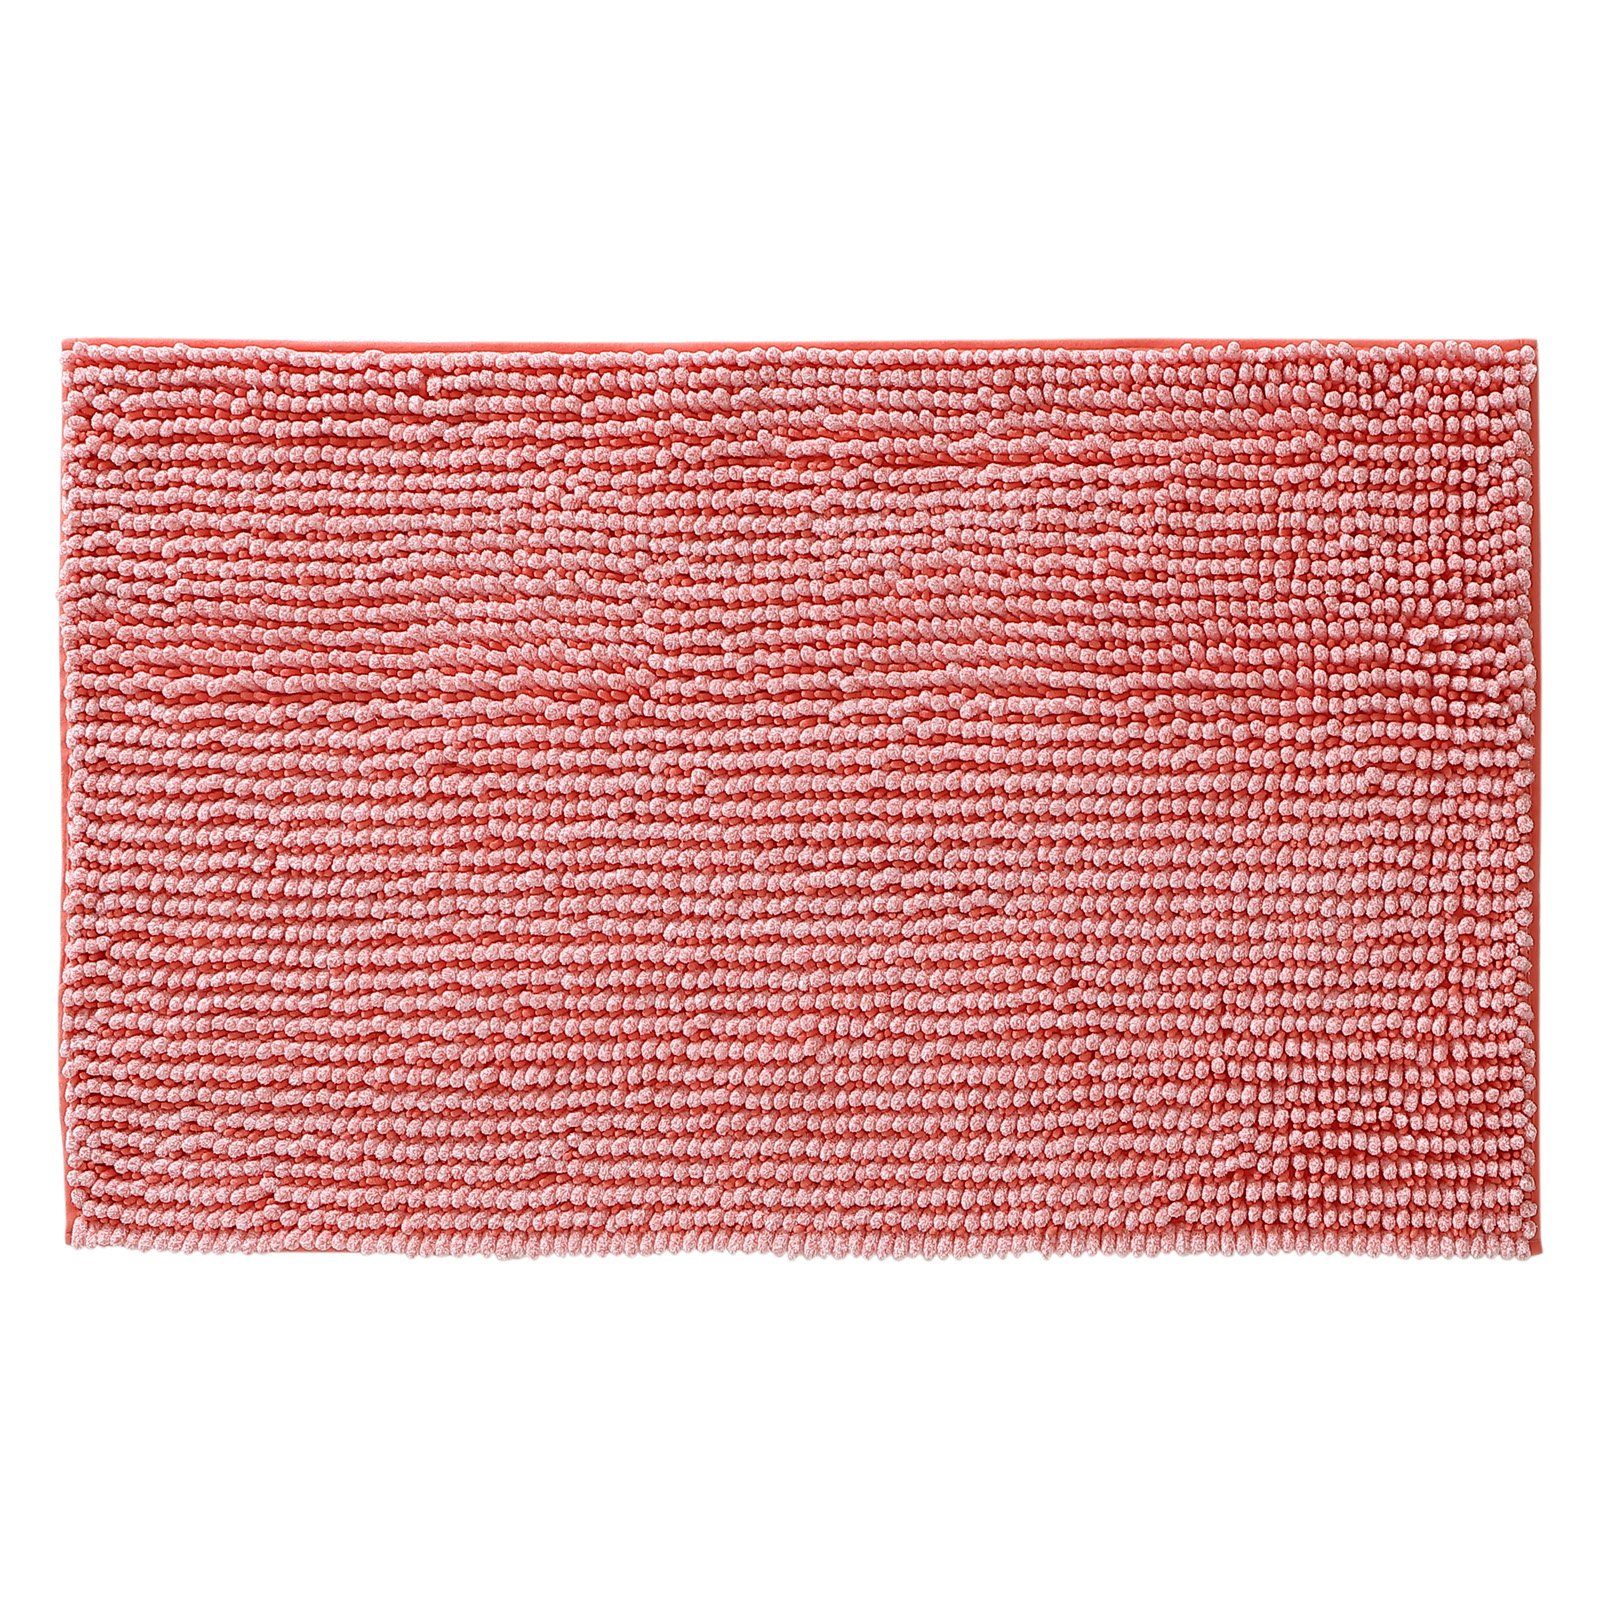 Click here to buy ***DISCONTINUED*** VCNY Home Solid Heathered Noodle Bath Rug, Multiple Colors and Sizes... by VCNY Home.